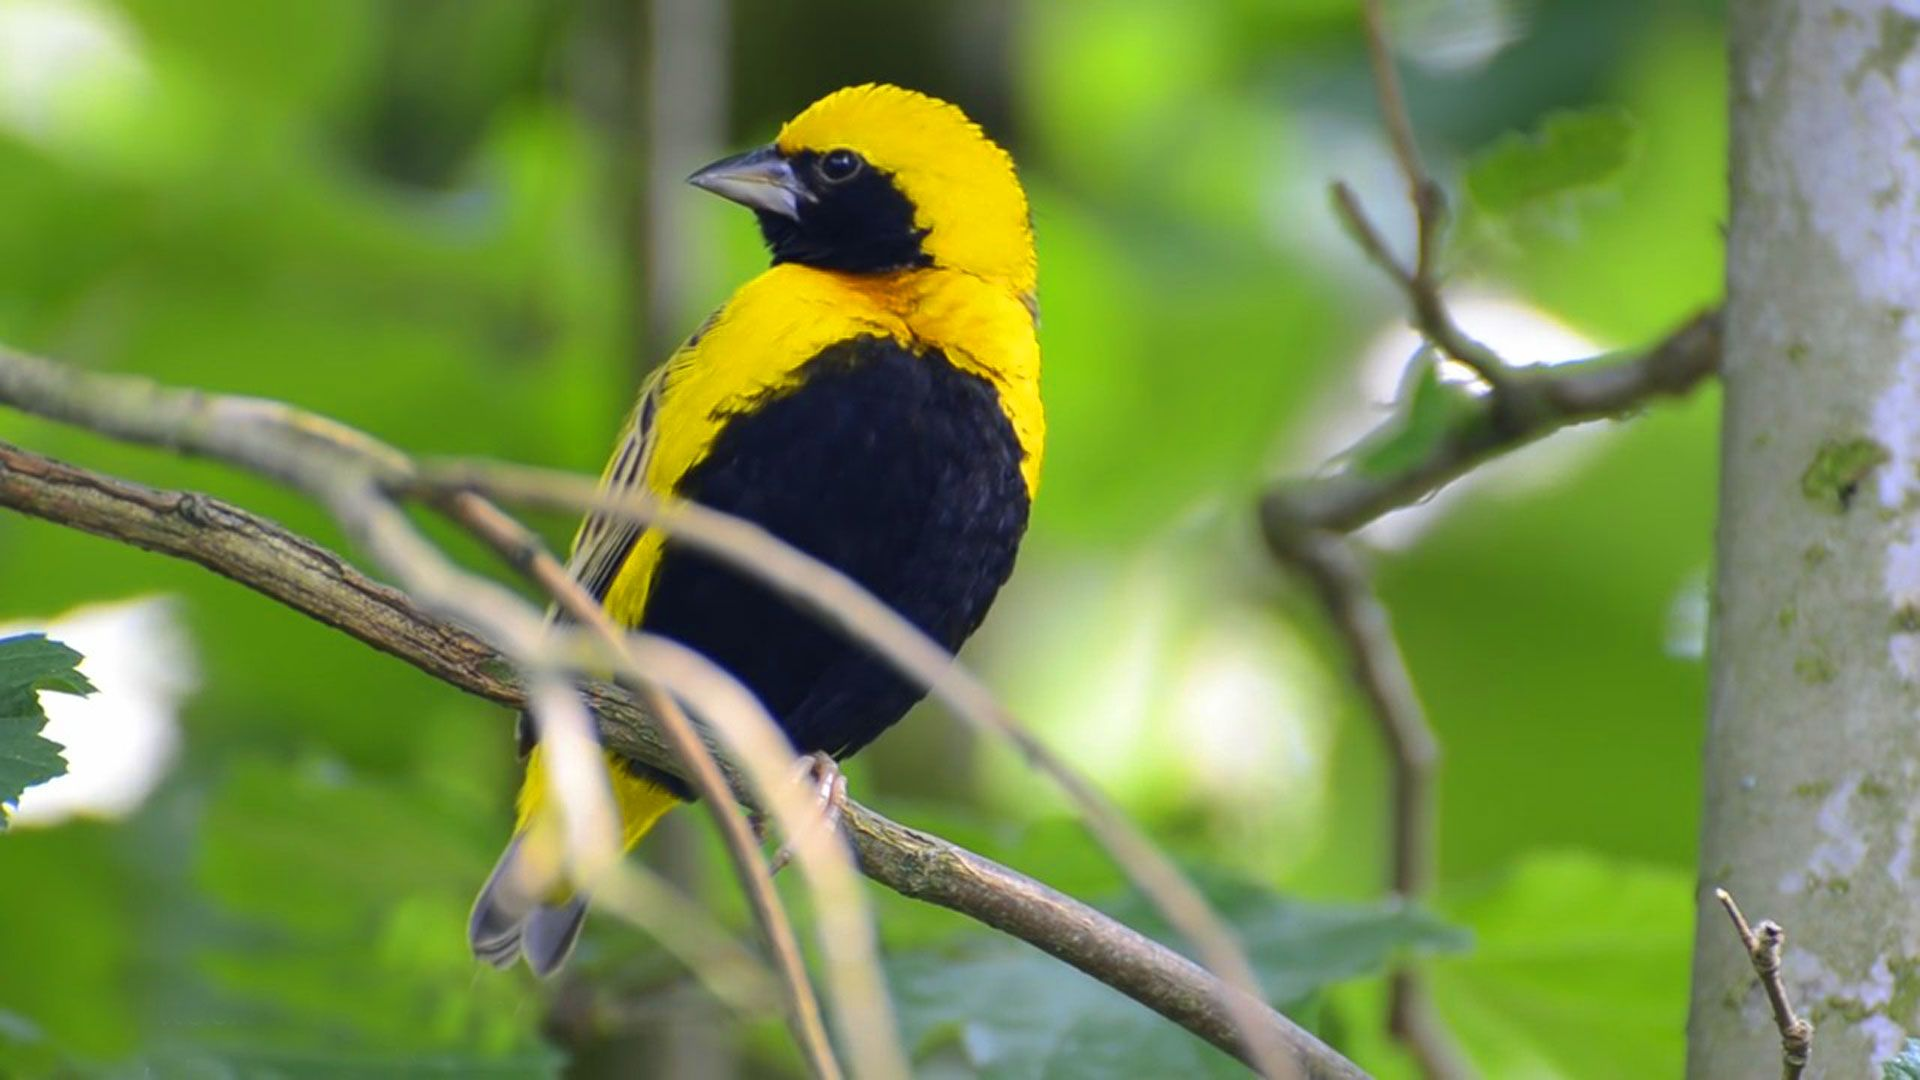 hd pics photos stunning attractive beautiful yellow black bird new